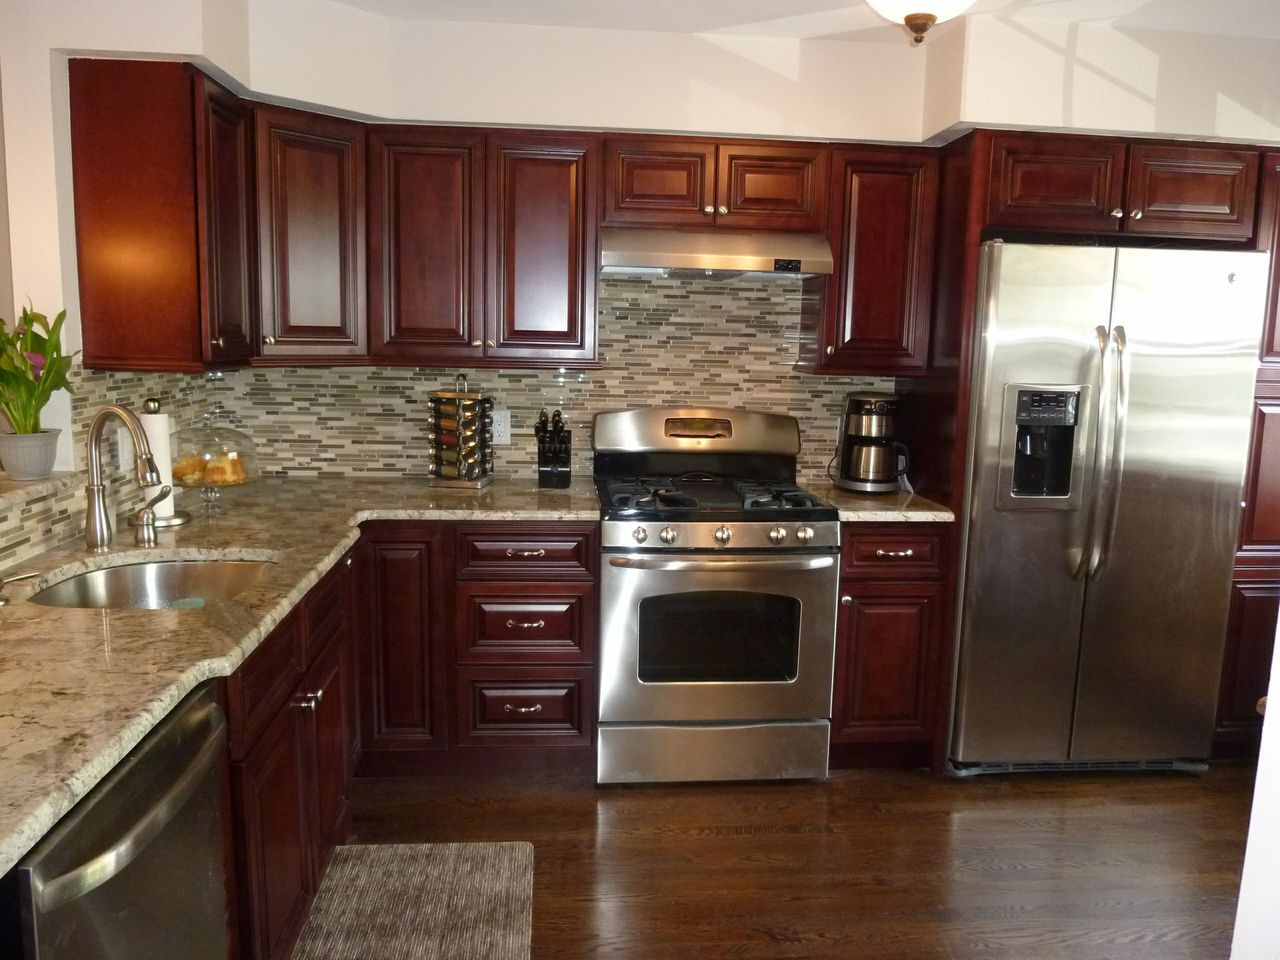 modern kitchen stainless steel appliances granite counter tops tile back splash mahogany cabinets - Mahogany Kitchen Cabinets